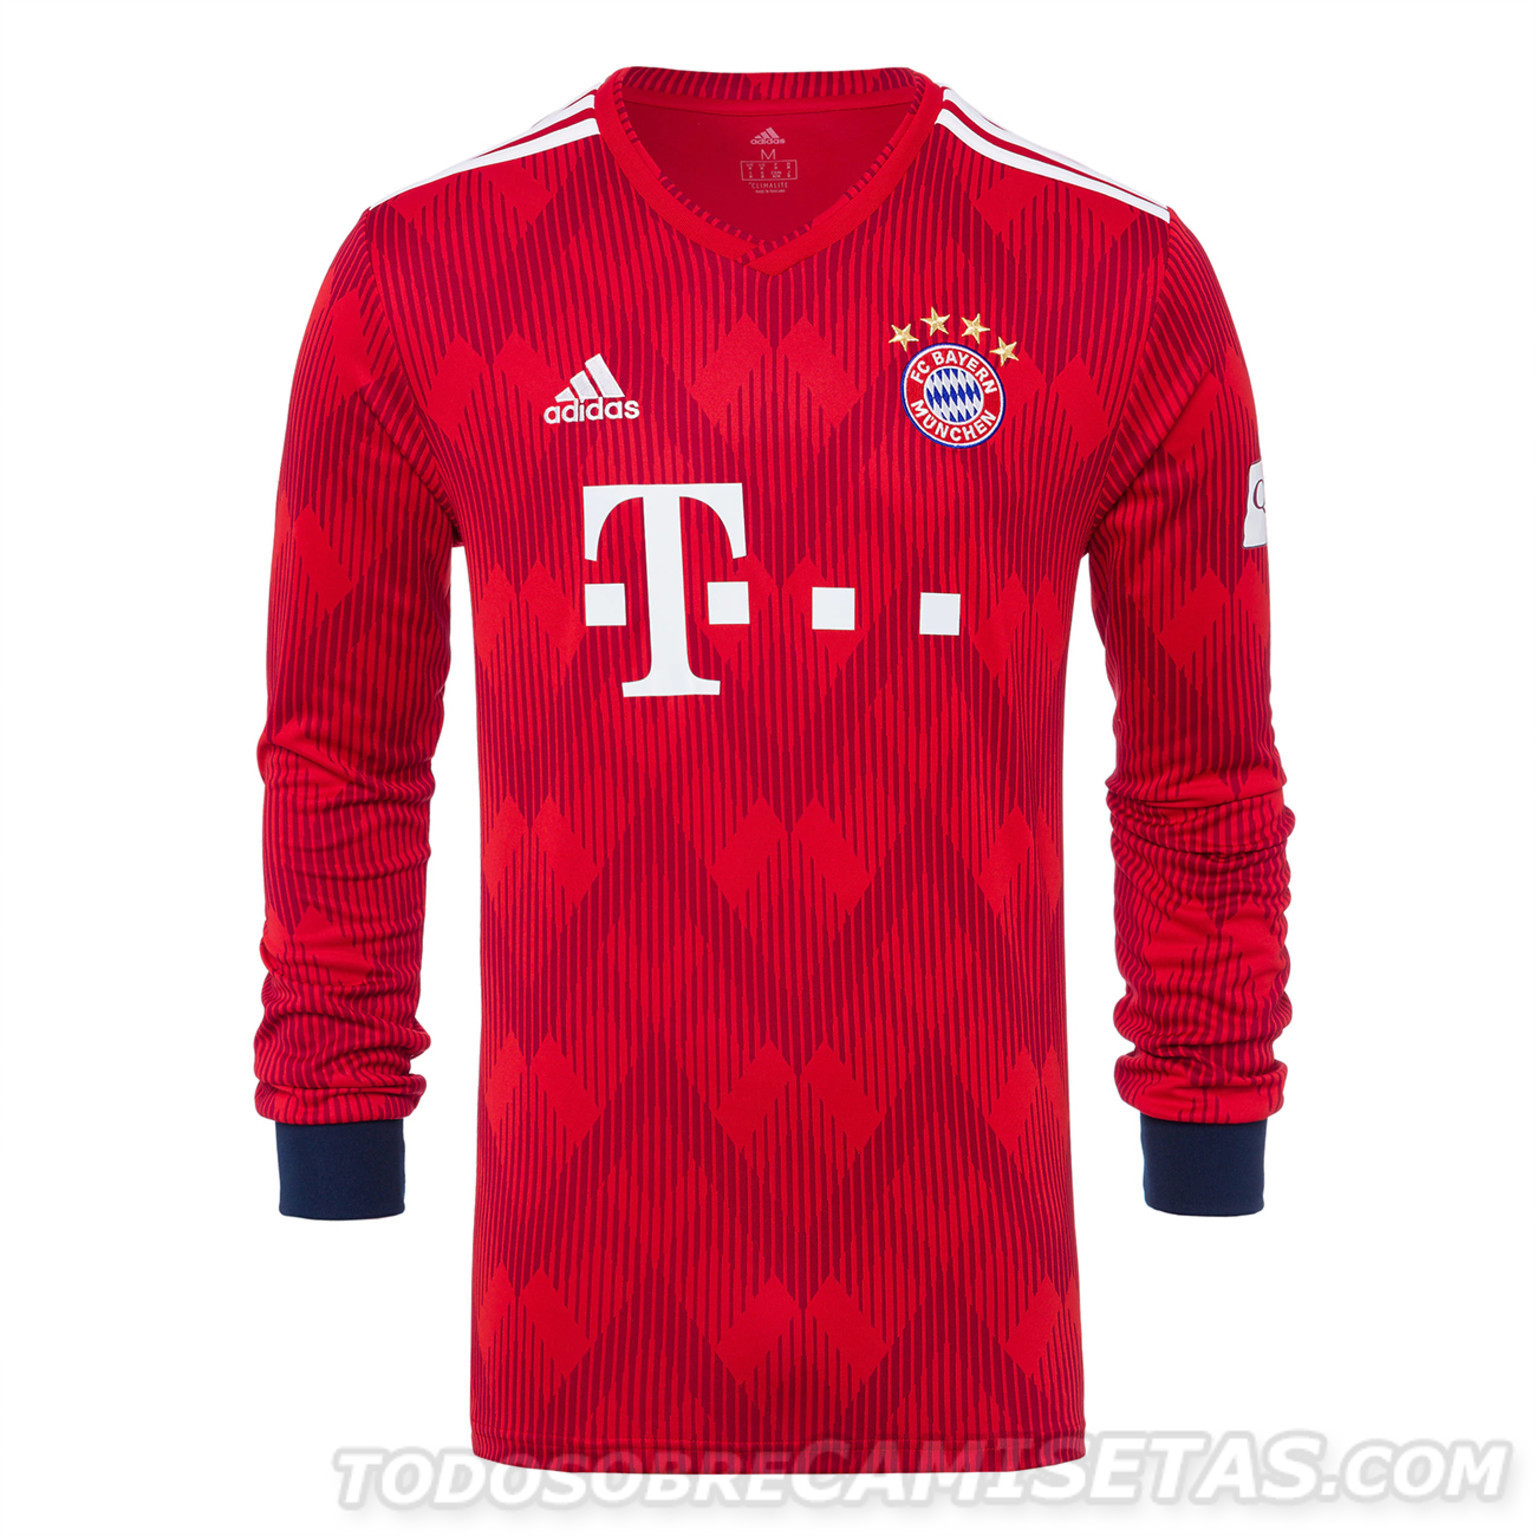 Bayern-Munich-2018-19-adidas-new-home-kit-8.jpg